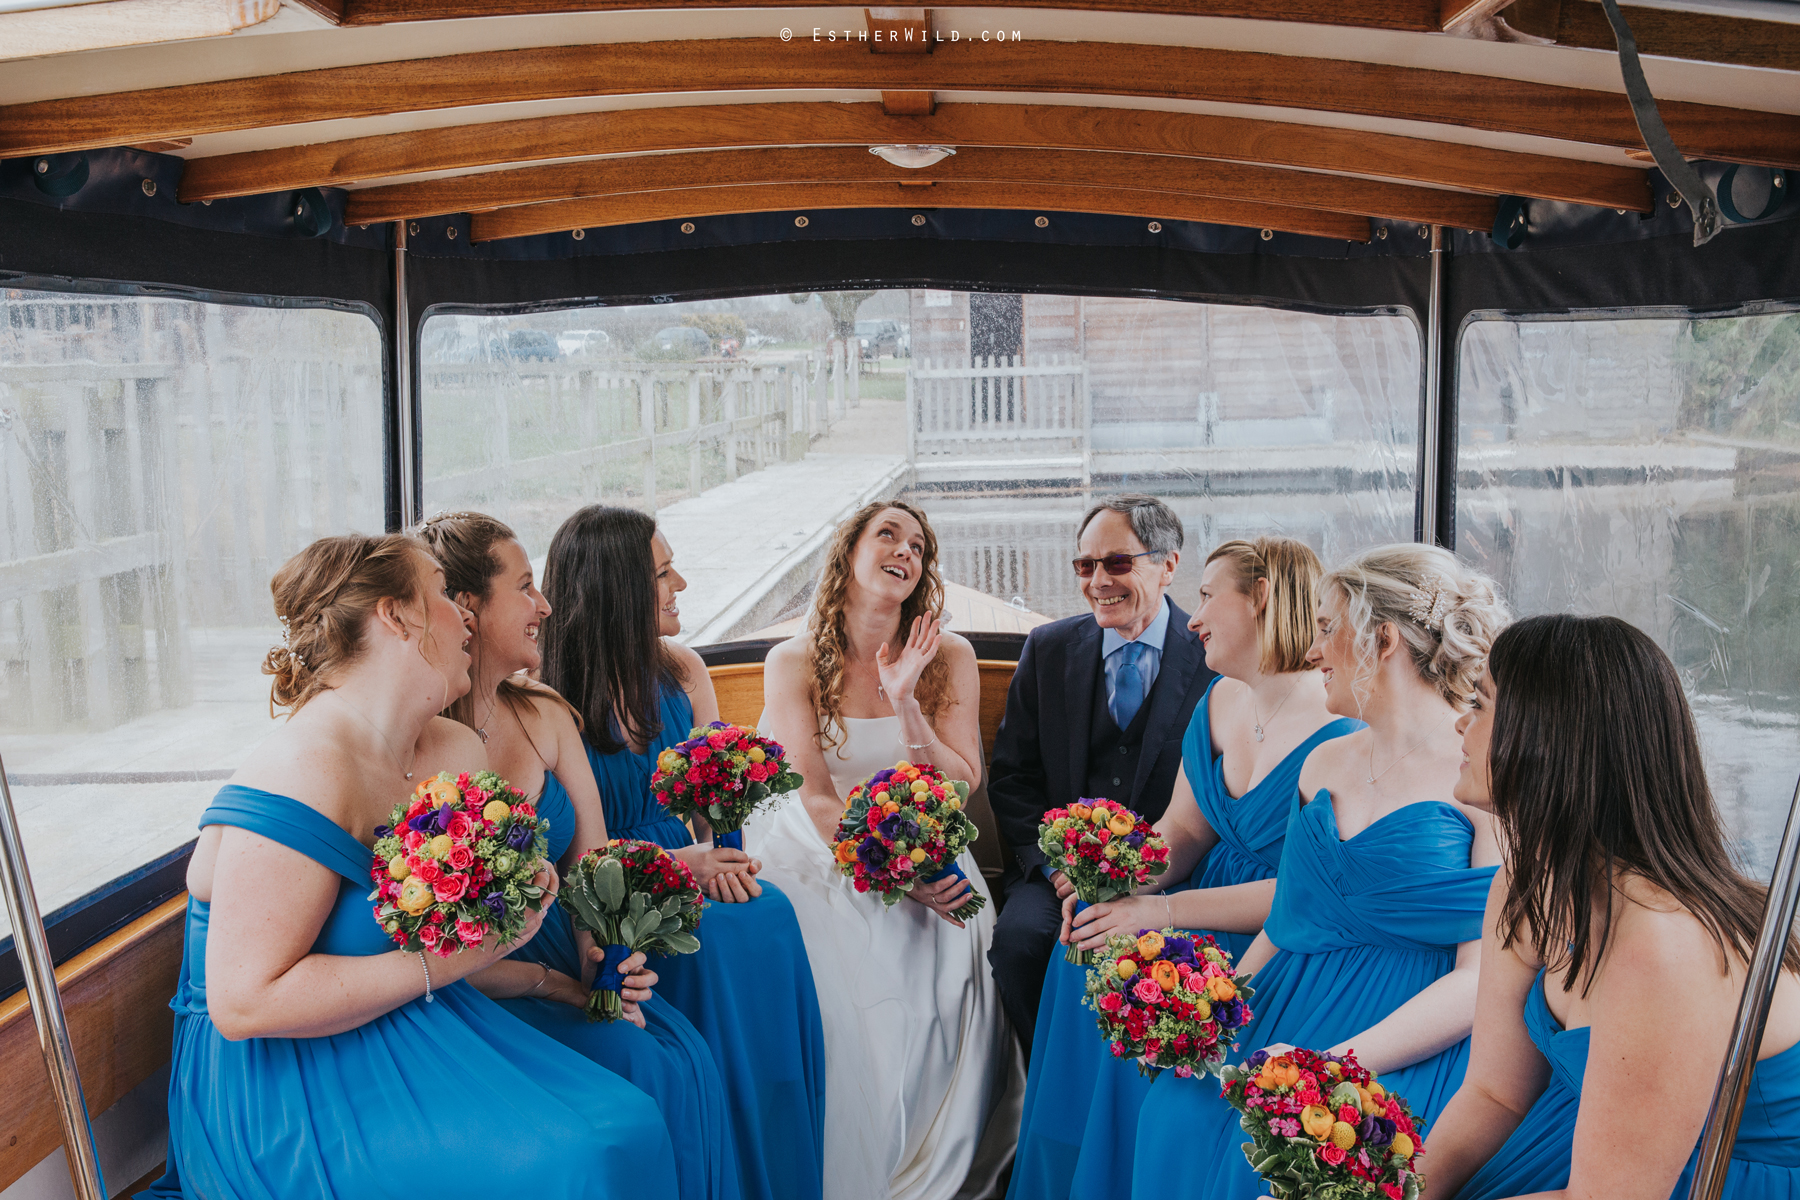 The_BoatHouse_Wedding_Venue_Ormesby_Norfolk_Broads_Boat_Wedding_Photography_Esther_Wild_Photographer_IMG_0769.jpg